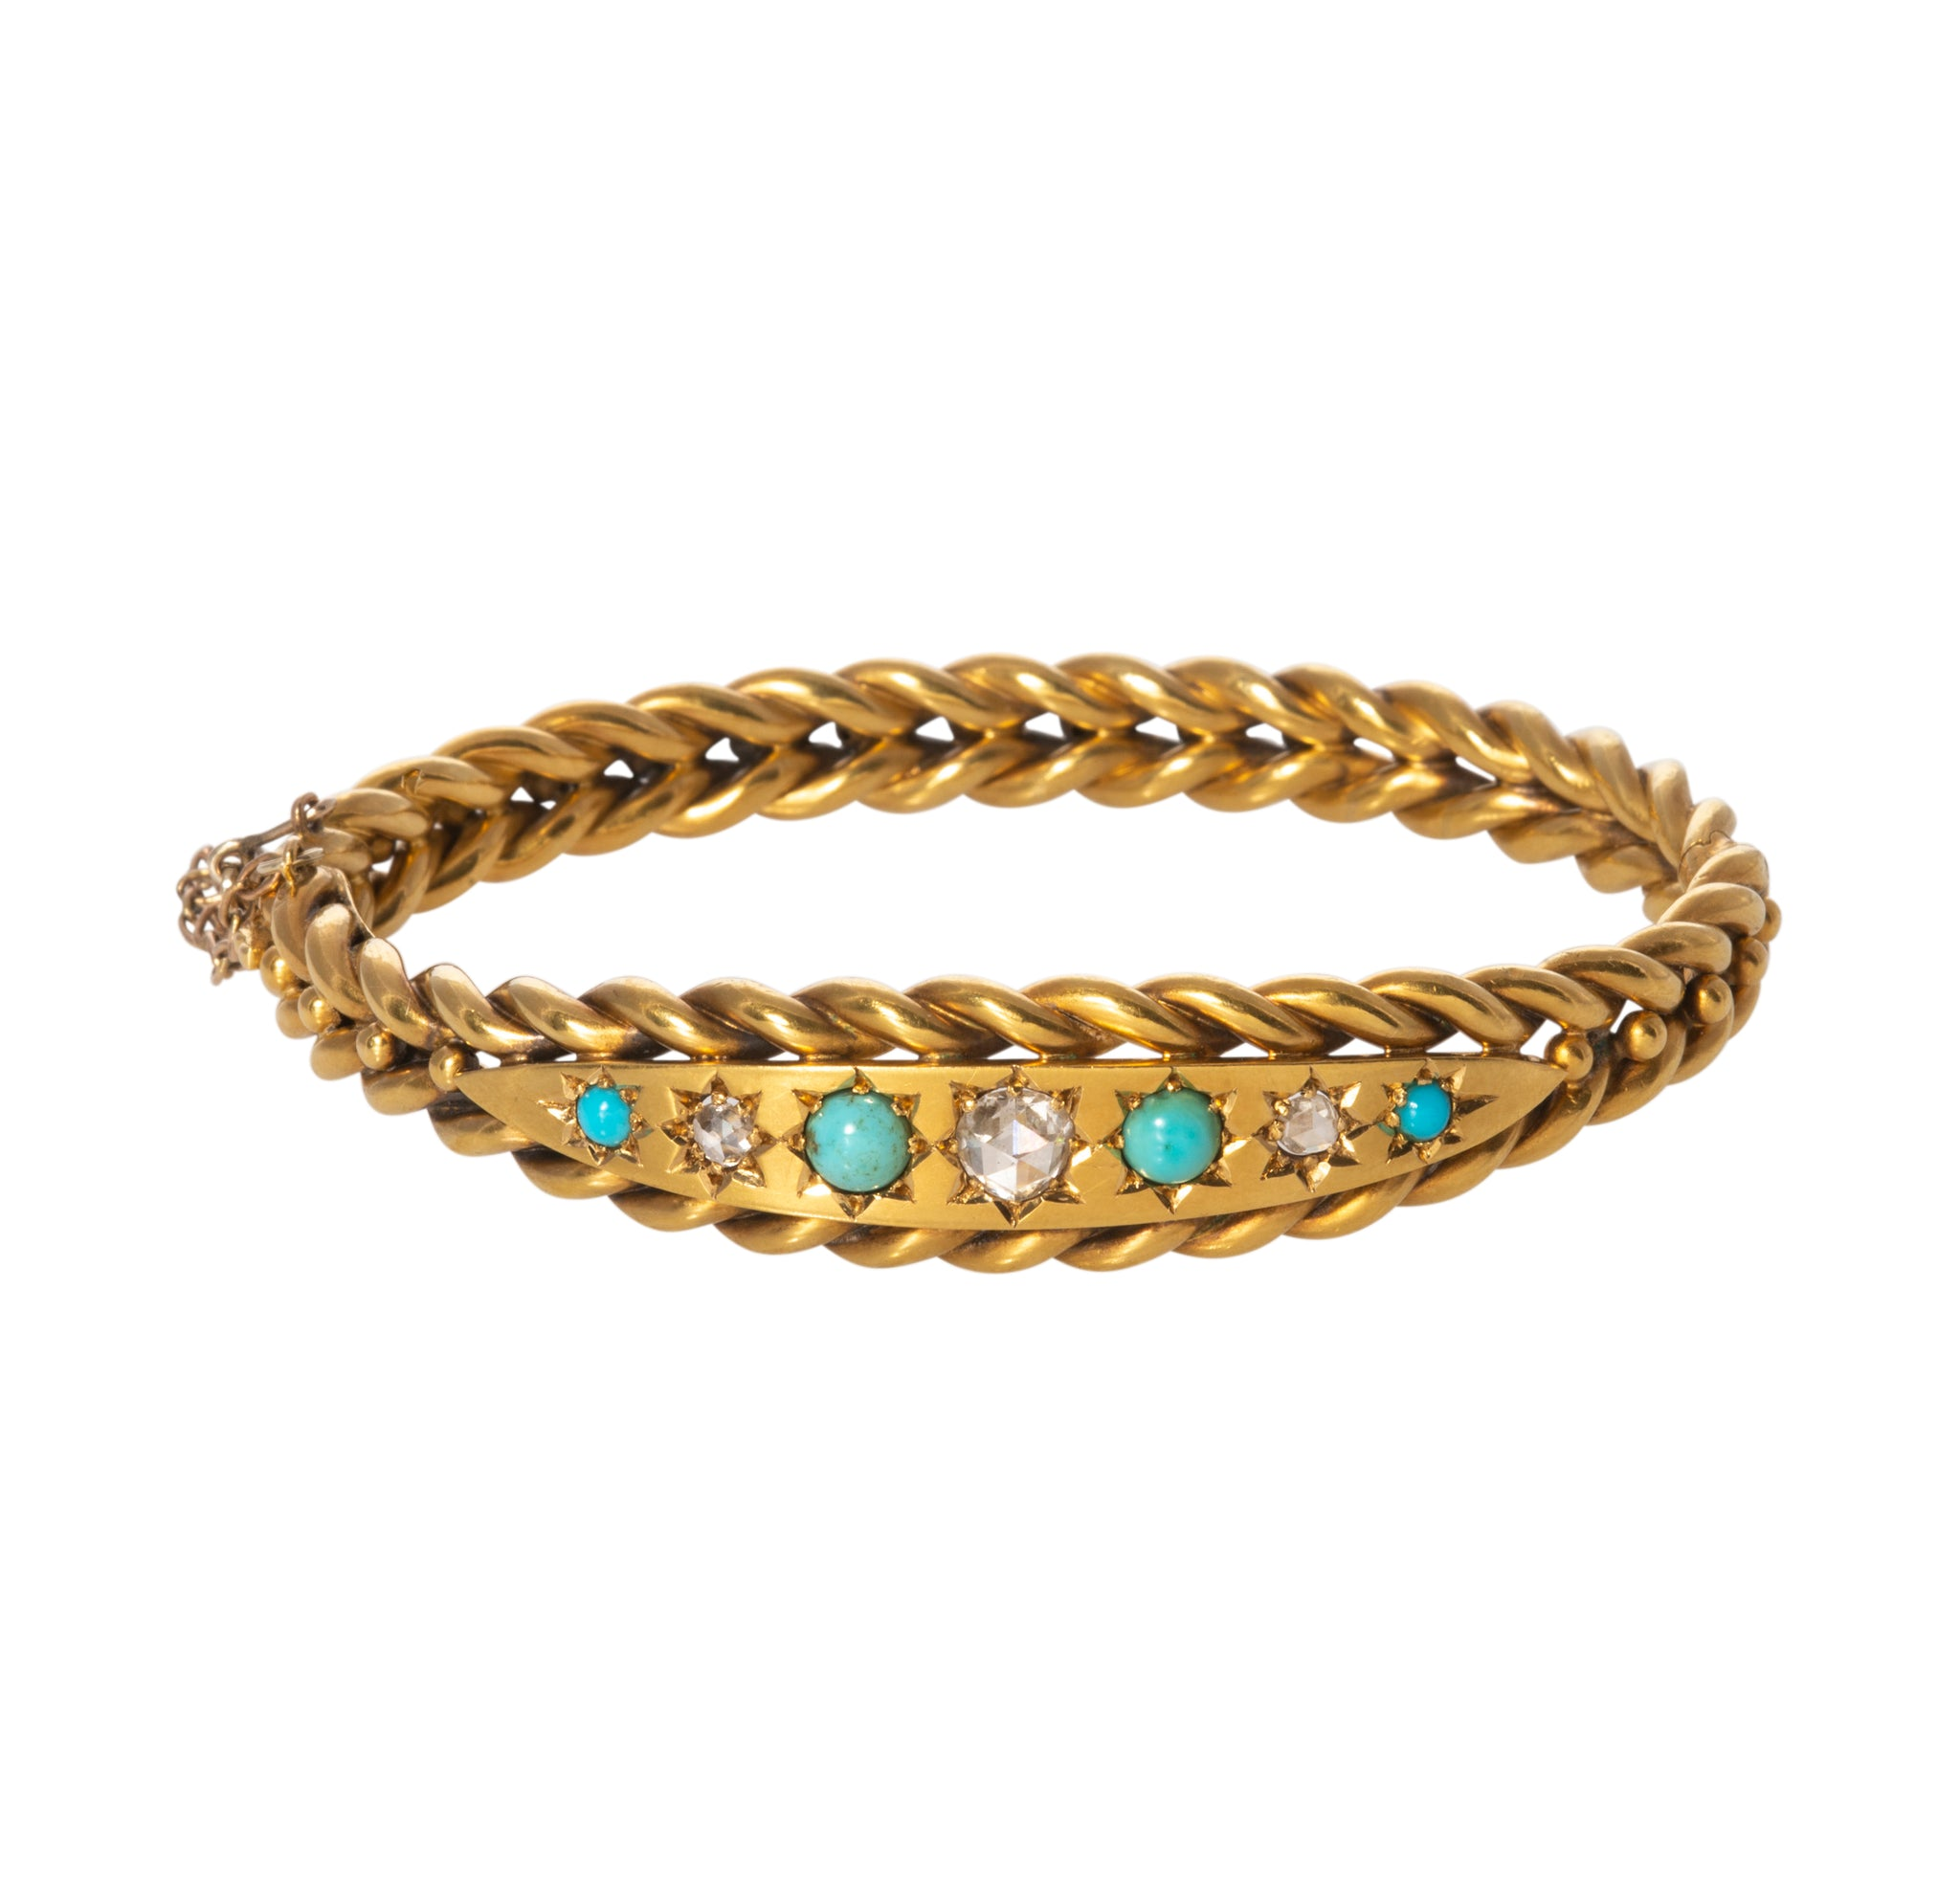 Victorian Diamond, Turquoise & 18K Gold Bangle